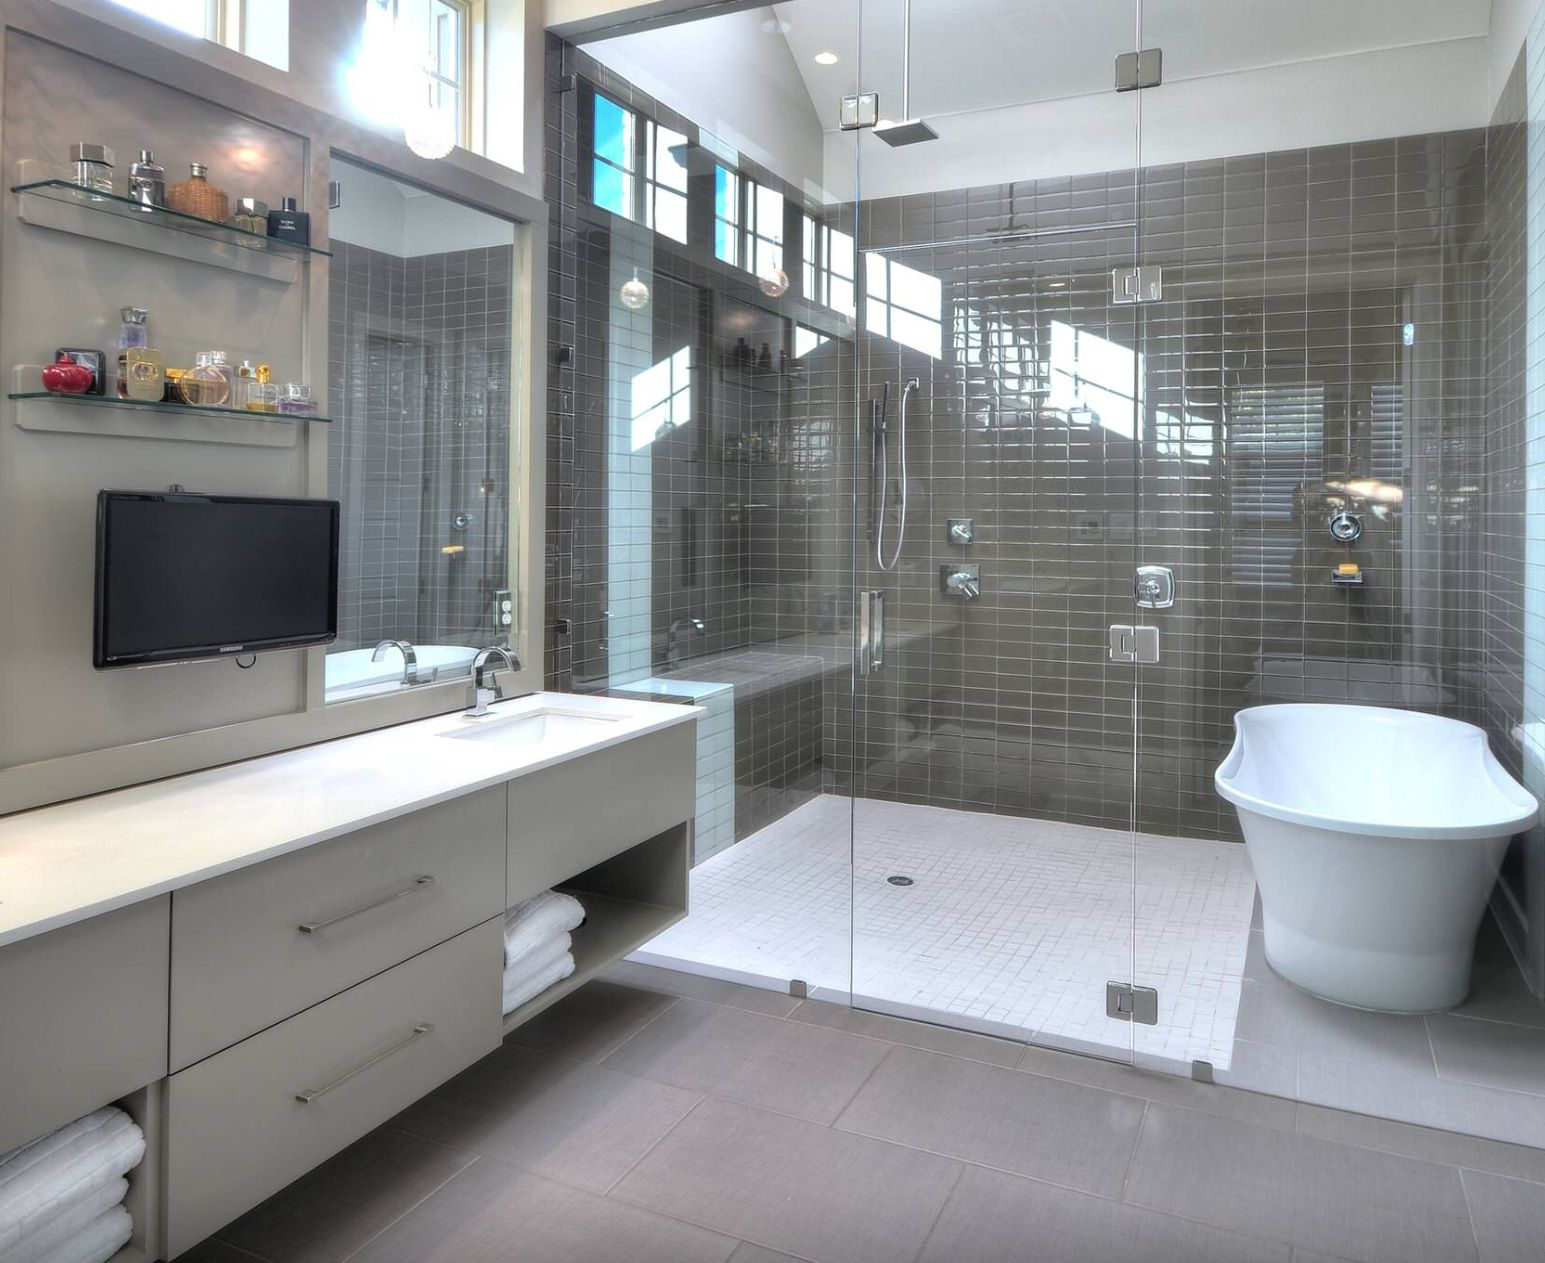 Combo tub shower wet room bathrooms pinterest wet for Bathroom remodelers in my area